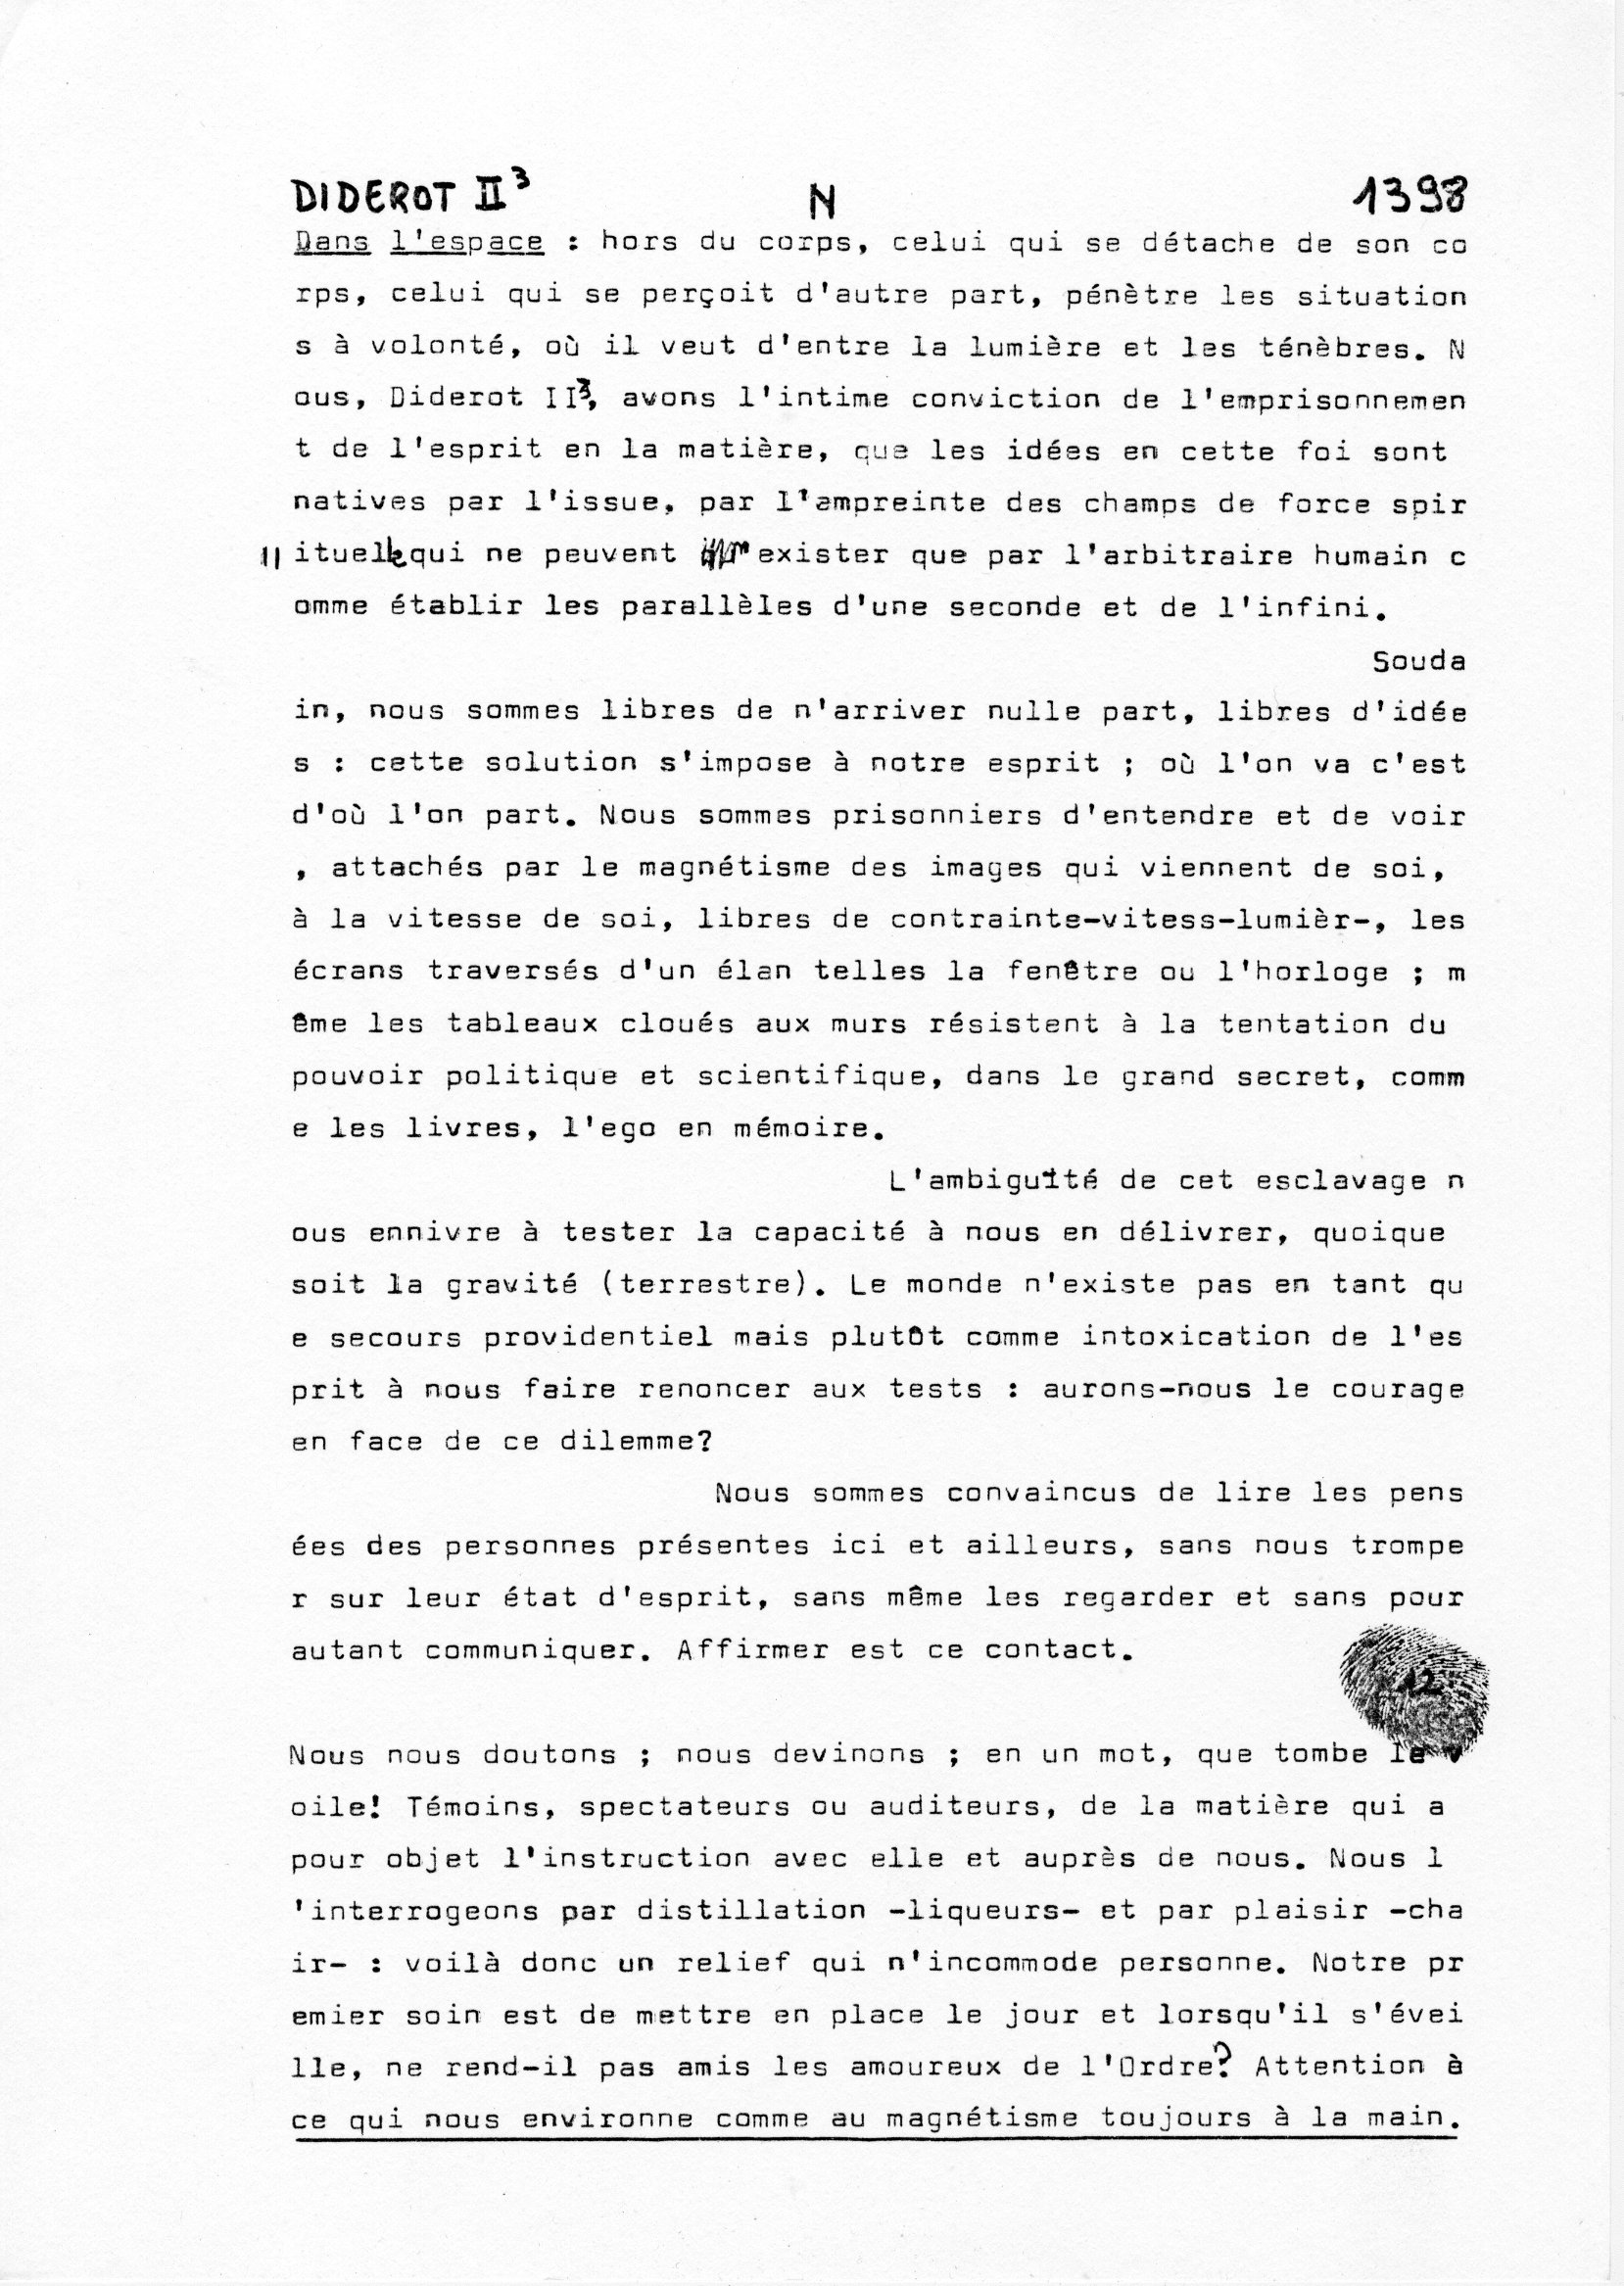 page 1398 Diderot II p3 N